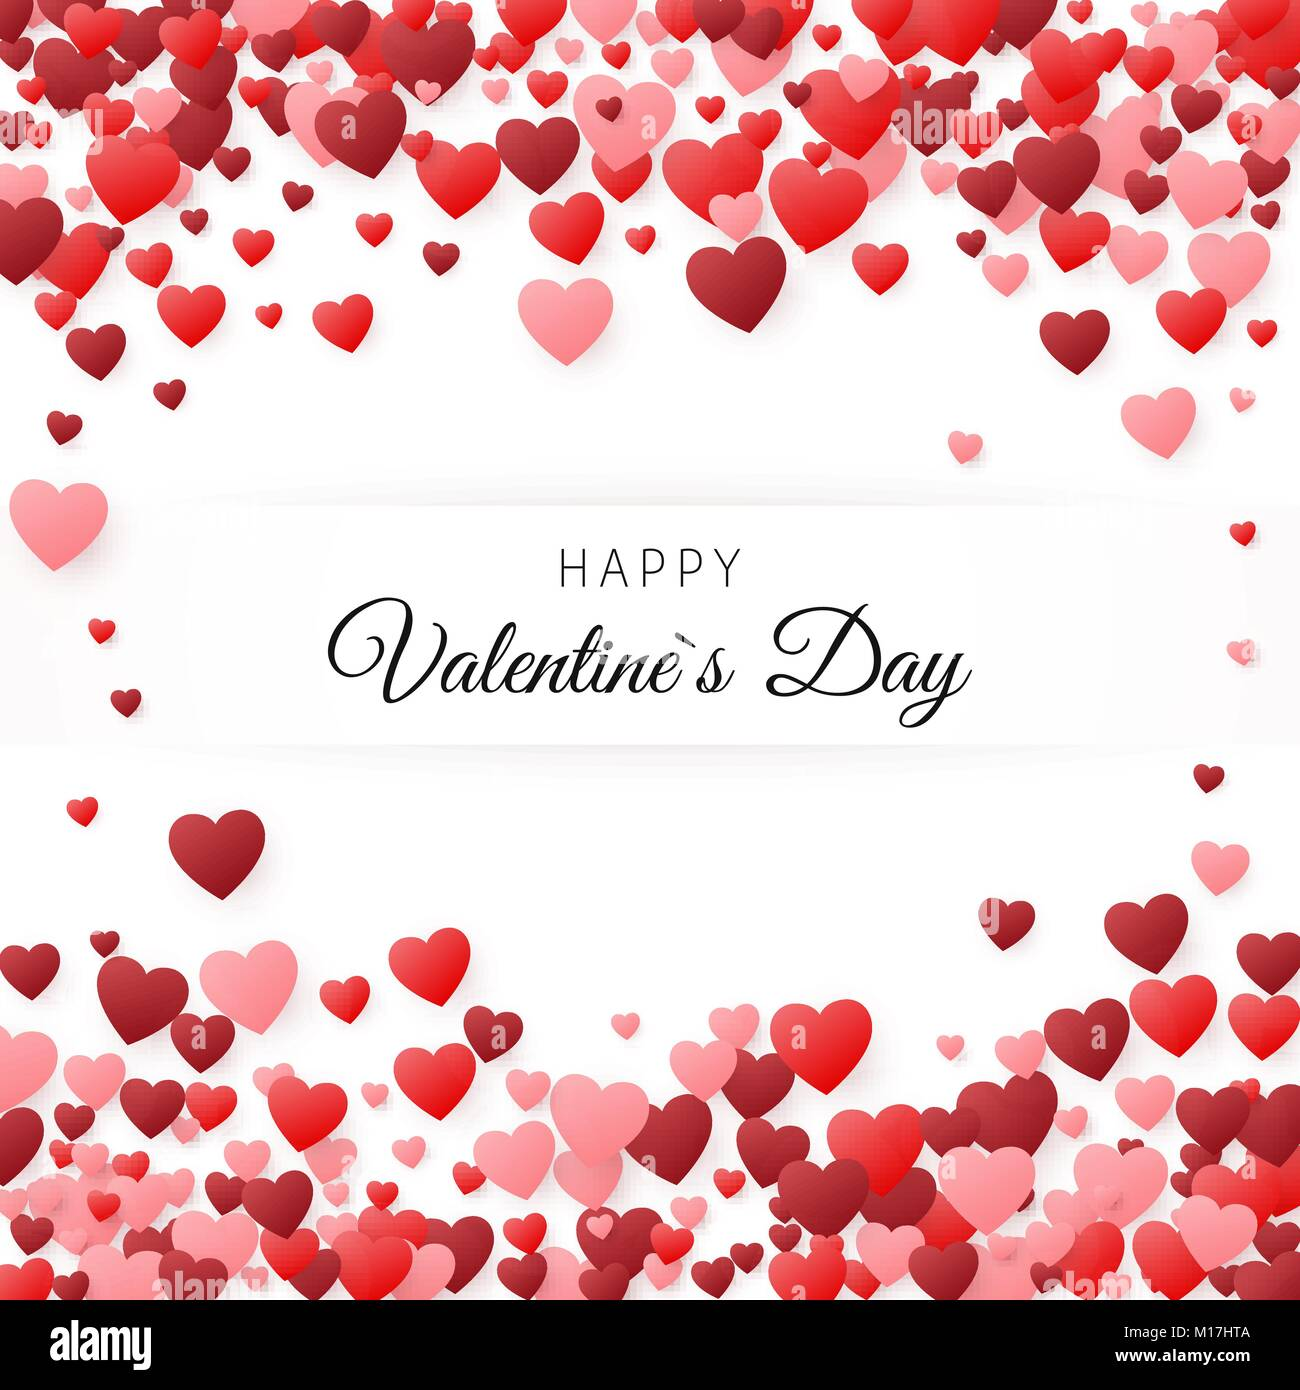 happy valentines day greeting card greeting card cover template